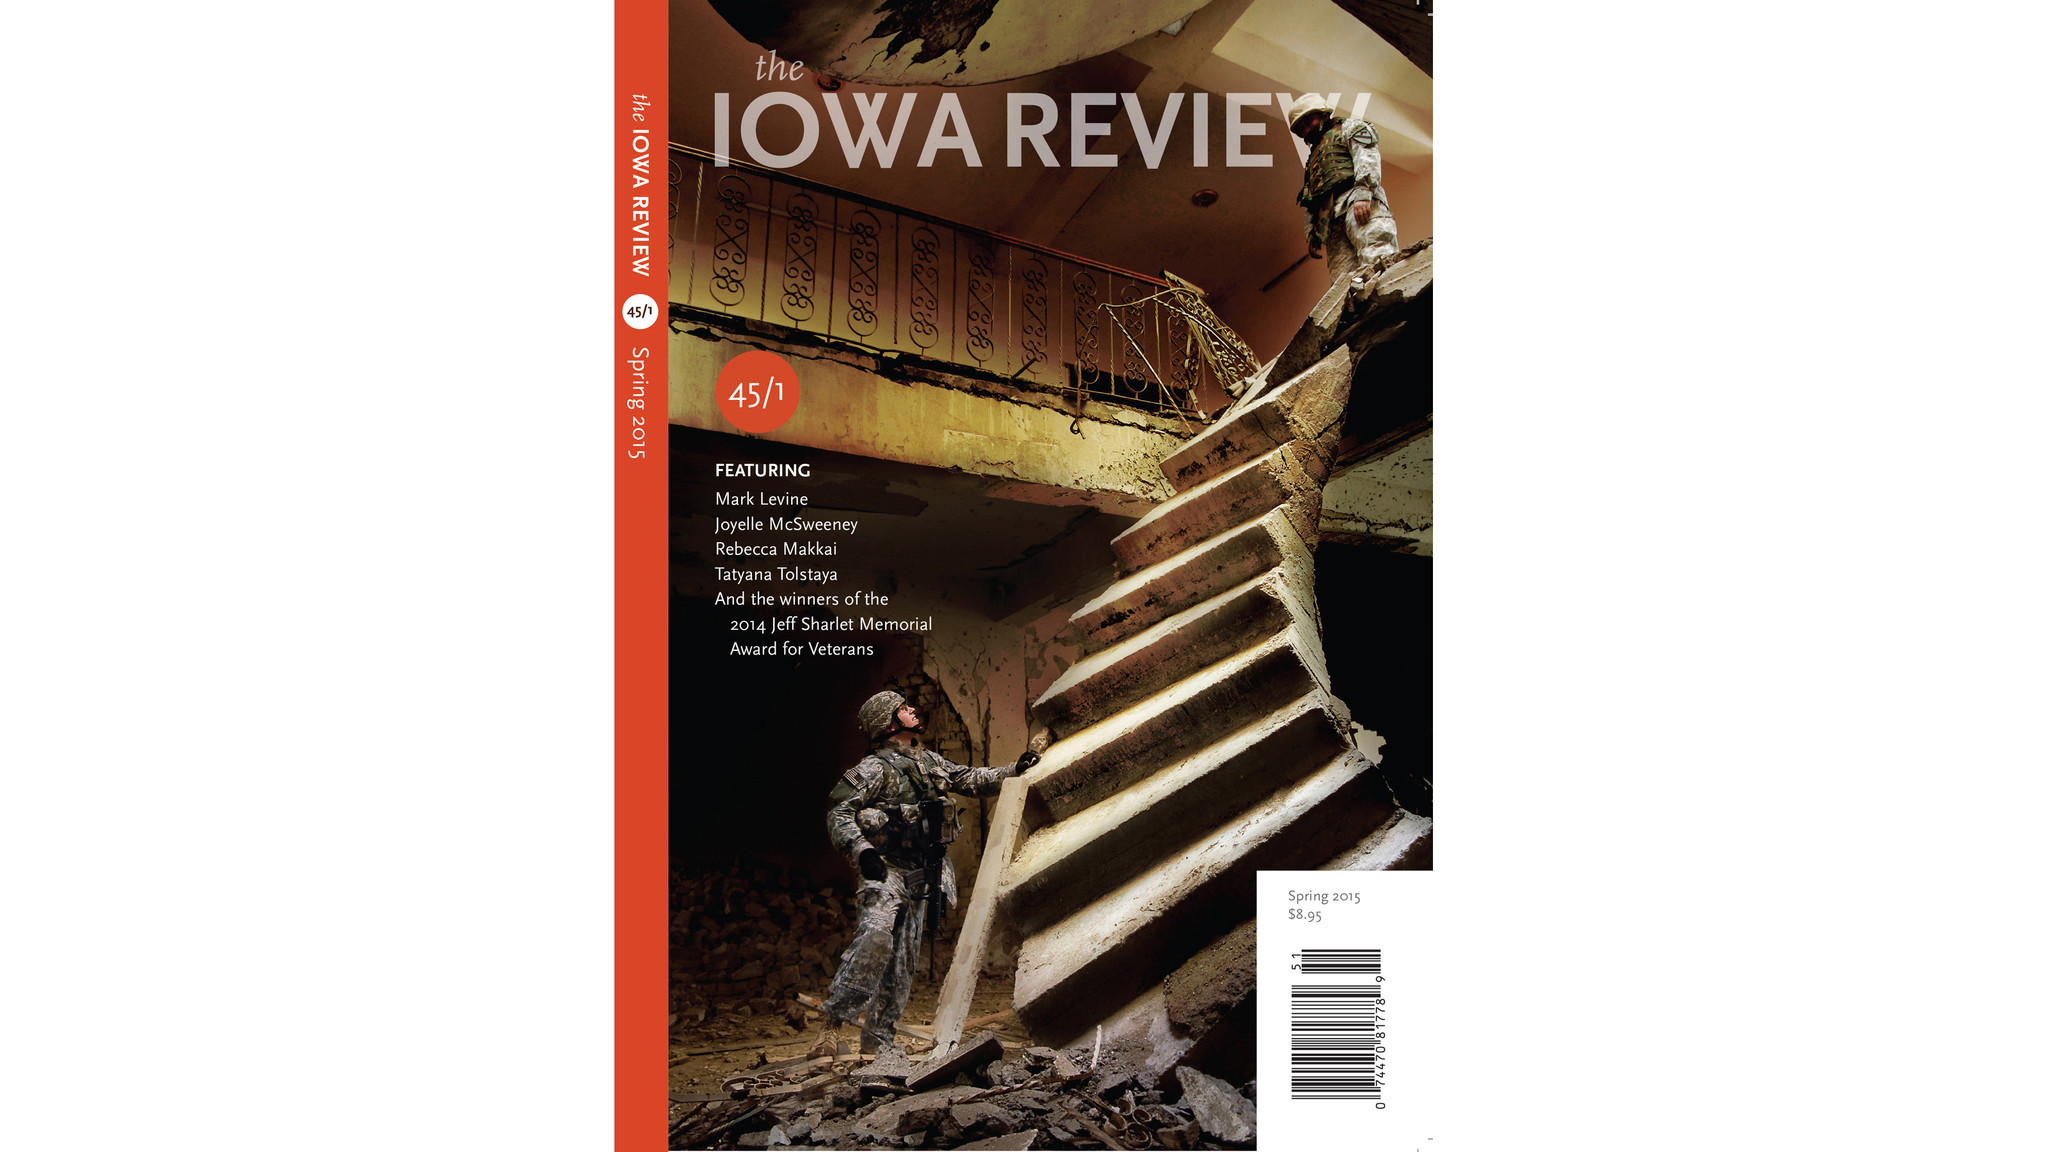 The cover of the Iowa Review, Vol. 45, featuring winners of the 2014 Jeff Sharlet Memorial Award for Veterans.